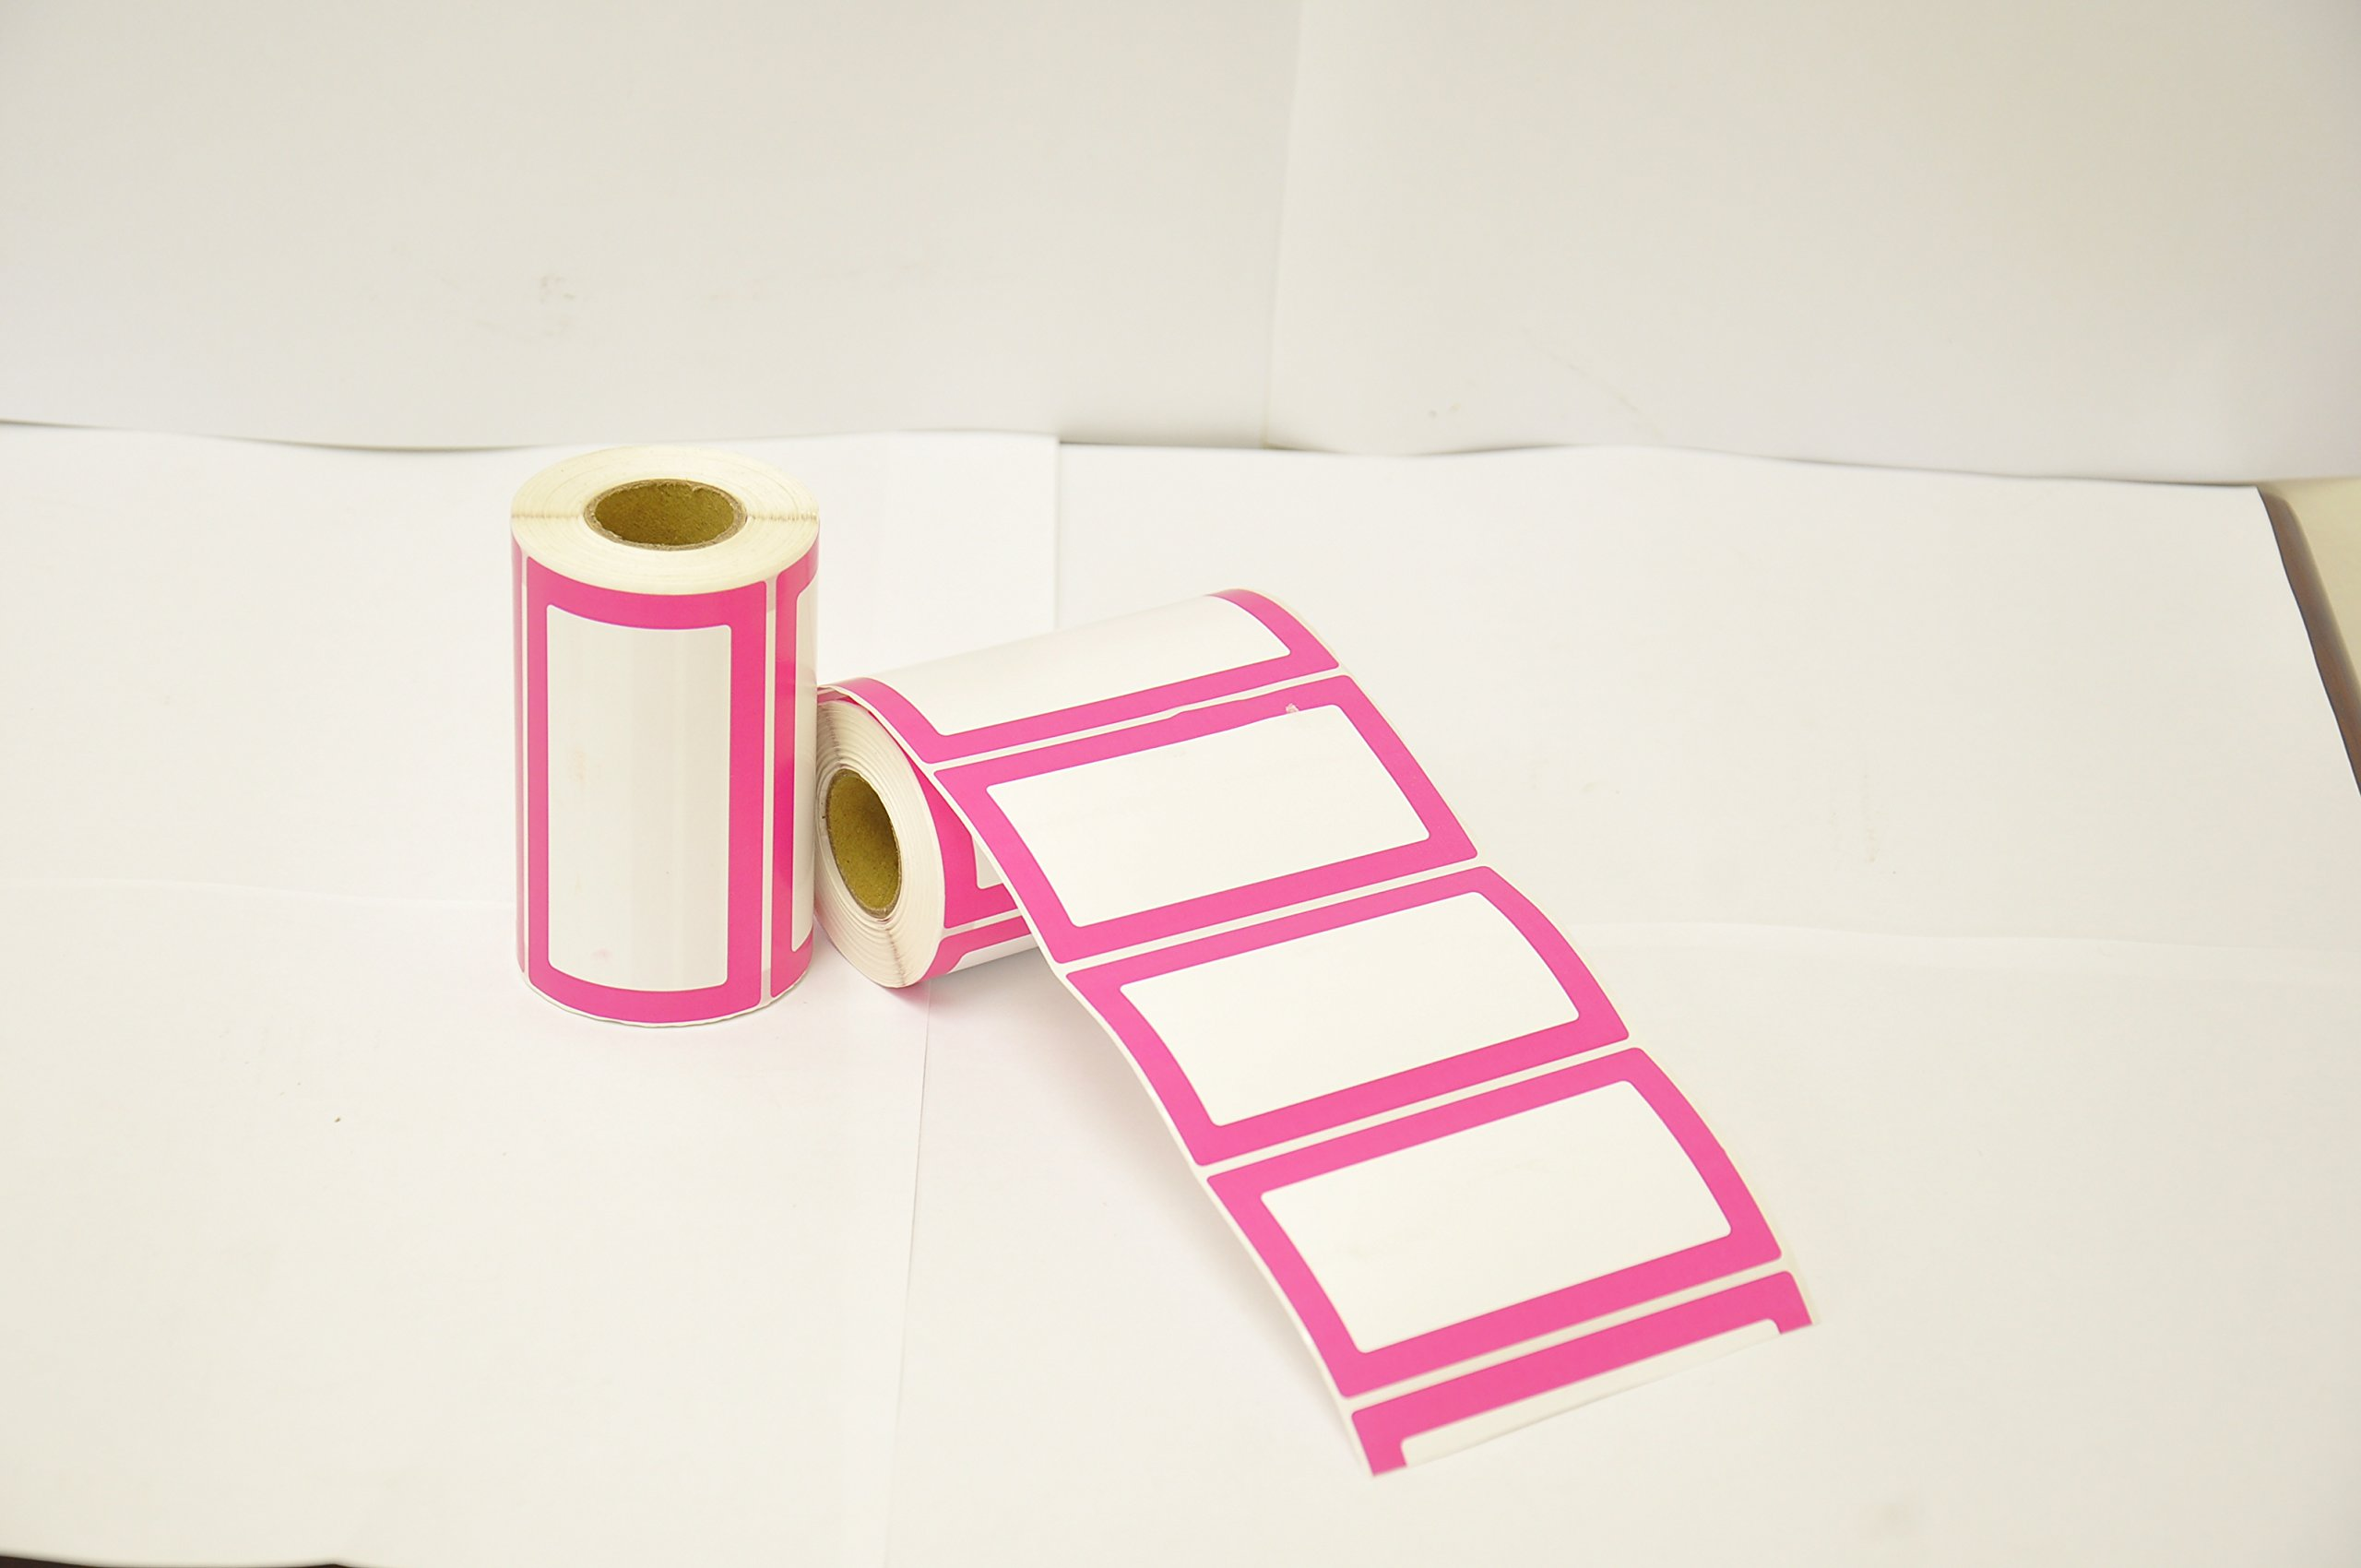 Colorful Plain Name Tag Labels - 2 Rolls 500 Stickers in Total - 3.5 x 2 inches - Nametags for Jars, Bottles, Food Containers, Folders, Birthday Parties and Kids Clothes (Pink/Pink 2 Pack) by Navy Penguin (Image #5)